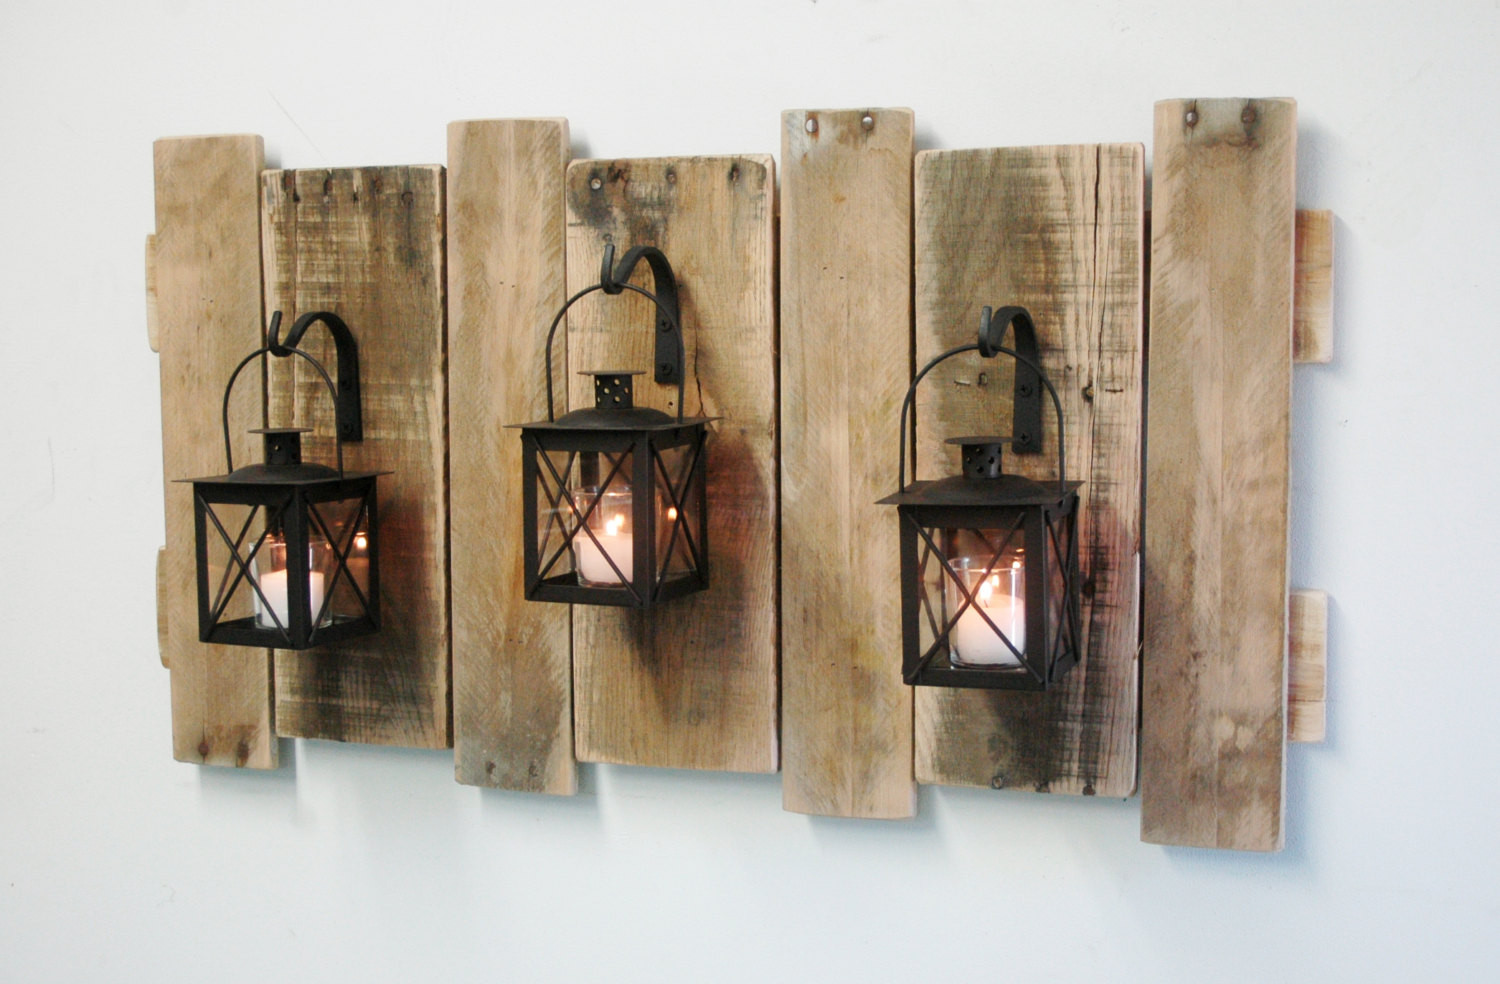 Best ideas about Pallet Wall Art . Save or Pin Farmhouse Style Pallet Wall Decor with Lanterns French Now.